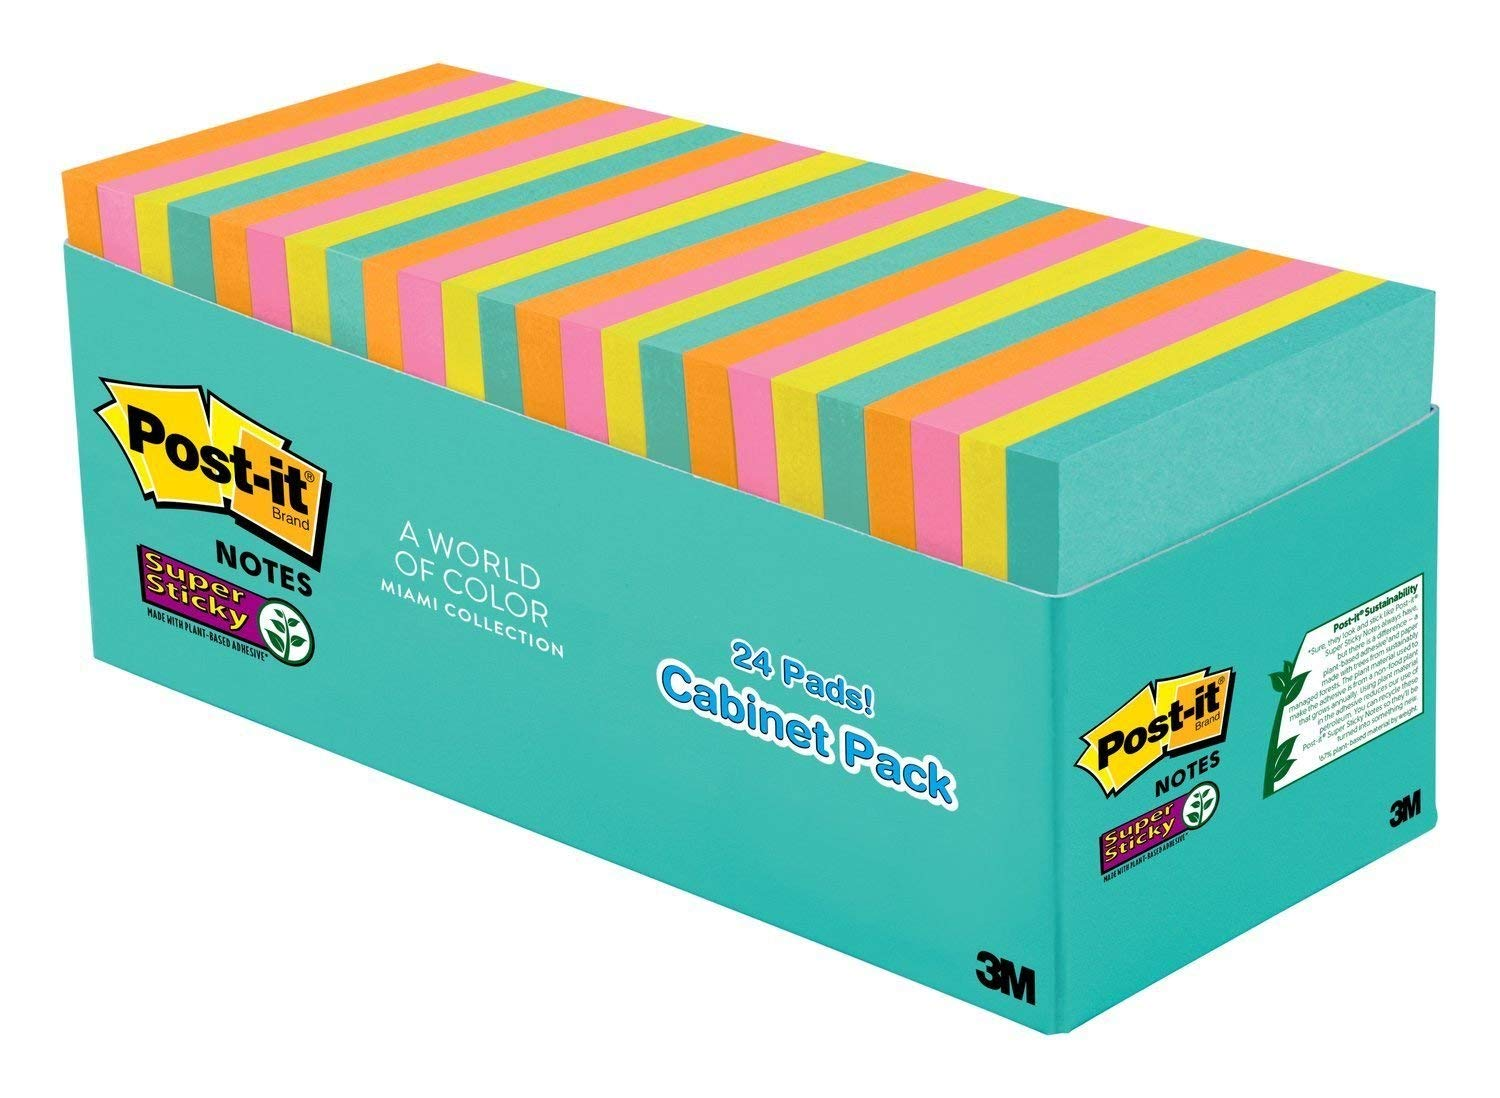 Post-it Super Sticky Notes, Bright Neons, Sticks and Resticks, Great for Reminders, 3 in. x 3 in, 68 Pads/Pack, (654-24SSMIA-CP) (68 Pads)